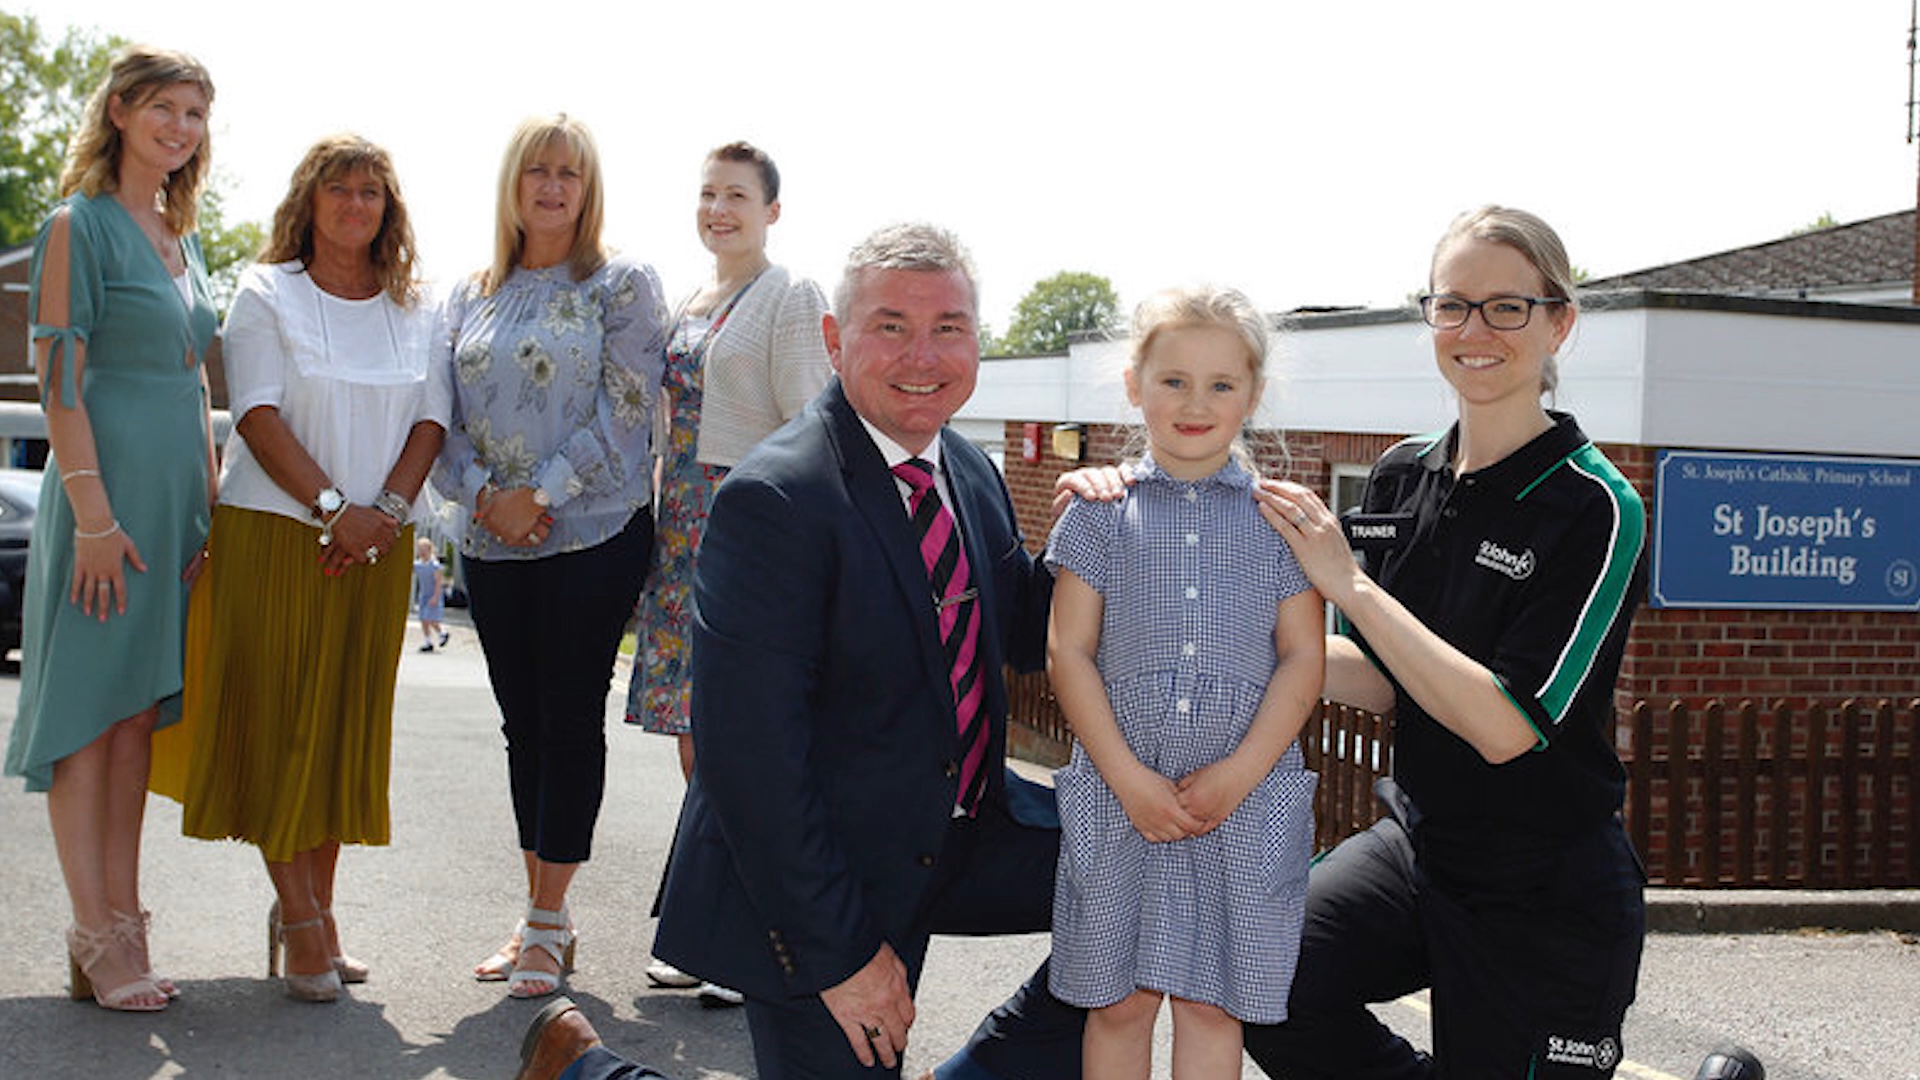 Headteacher at St Joseph´s Catholic Primary School in Aldershot saves 4yr old's life after she had a febrile convolusion.